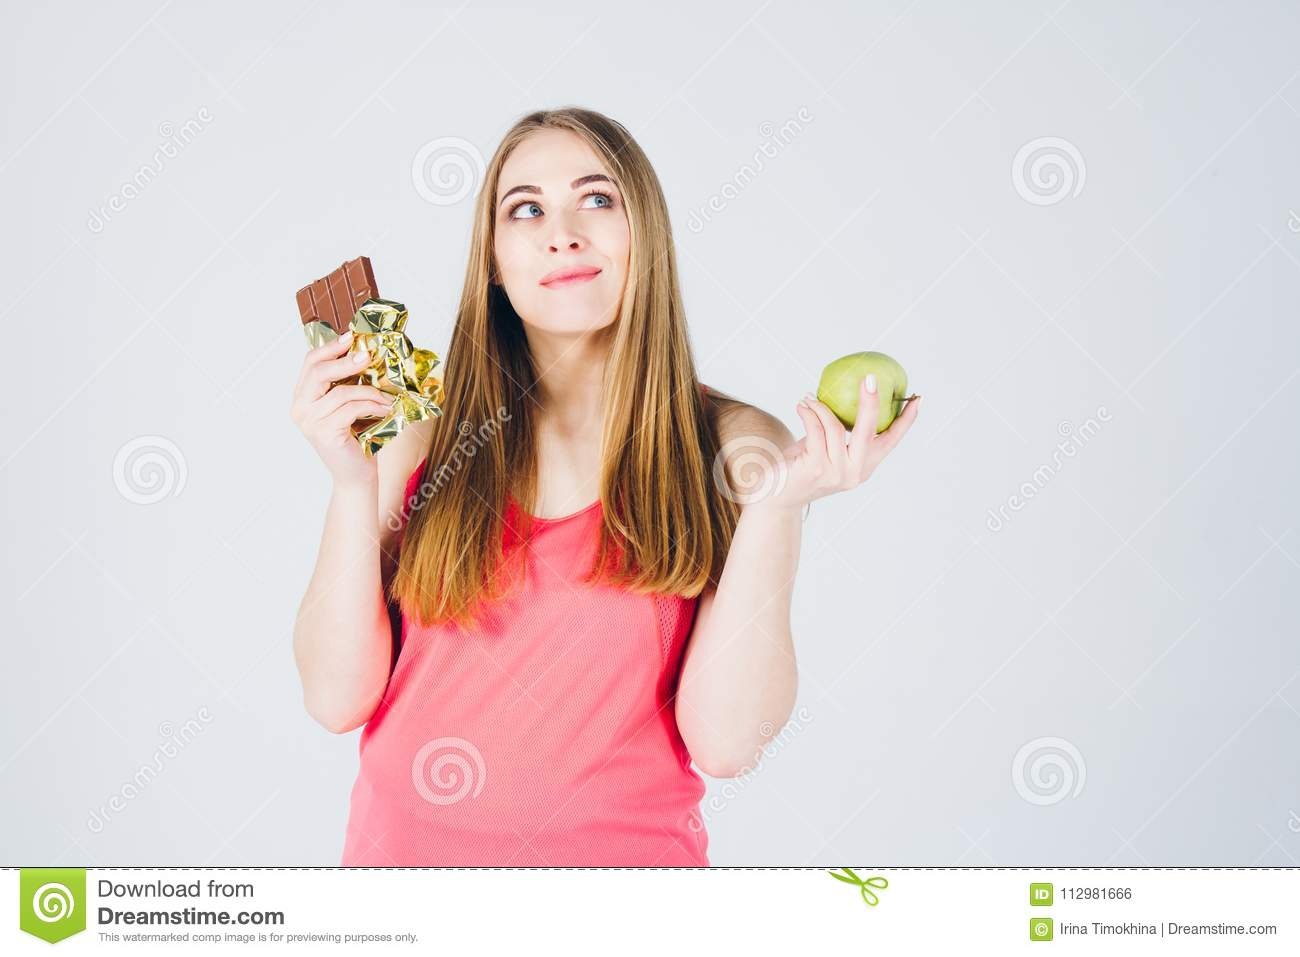 Girl chooses between Apple and chocolate